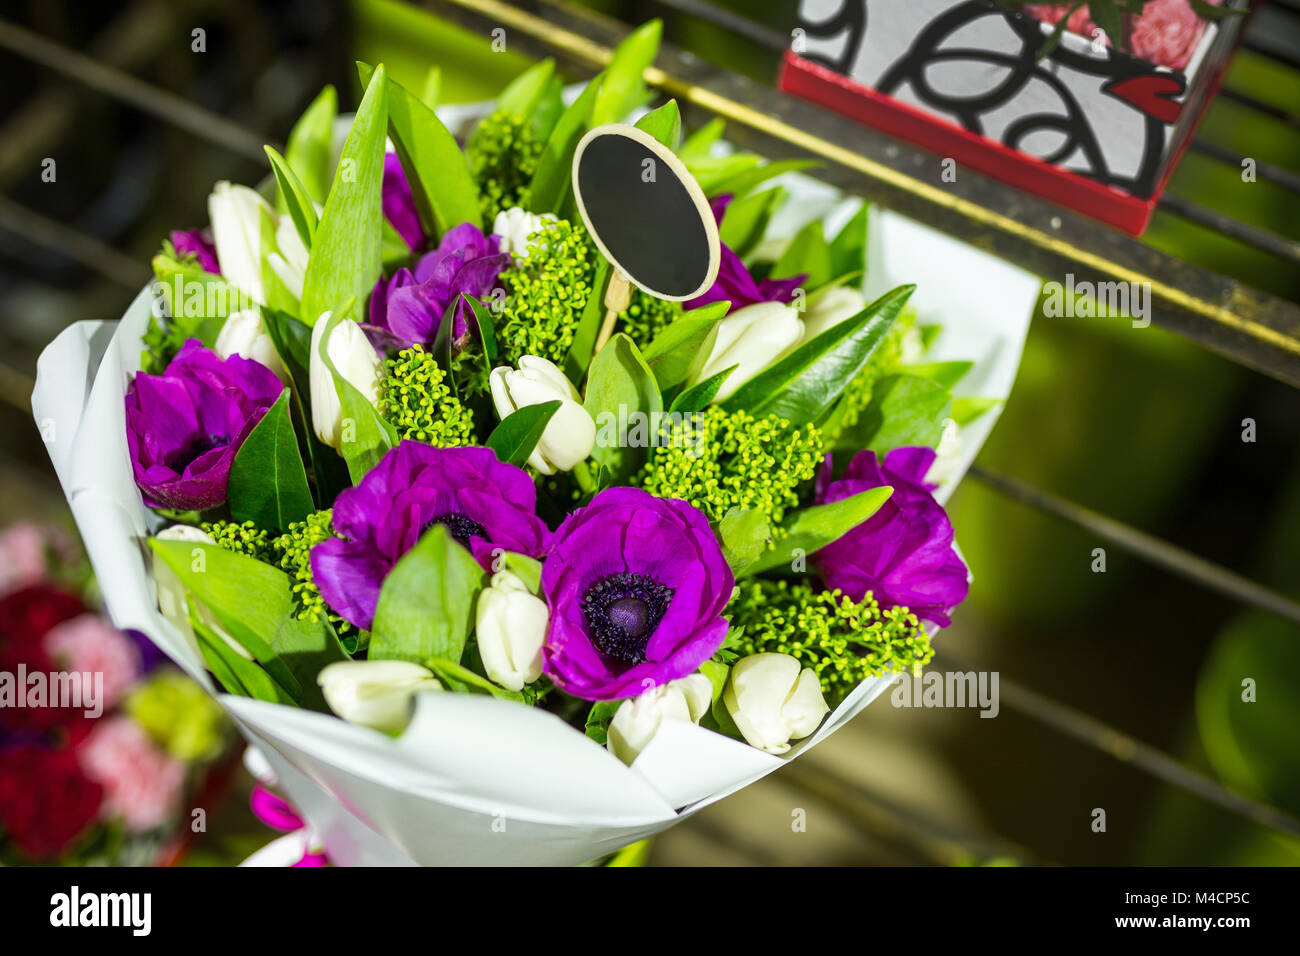 Beautiful Bouquet Of Fresh Flowers In Boxes Florist Service Concept